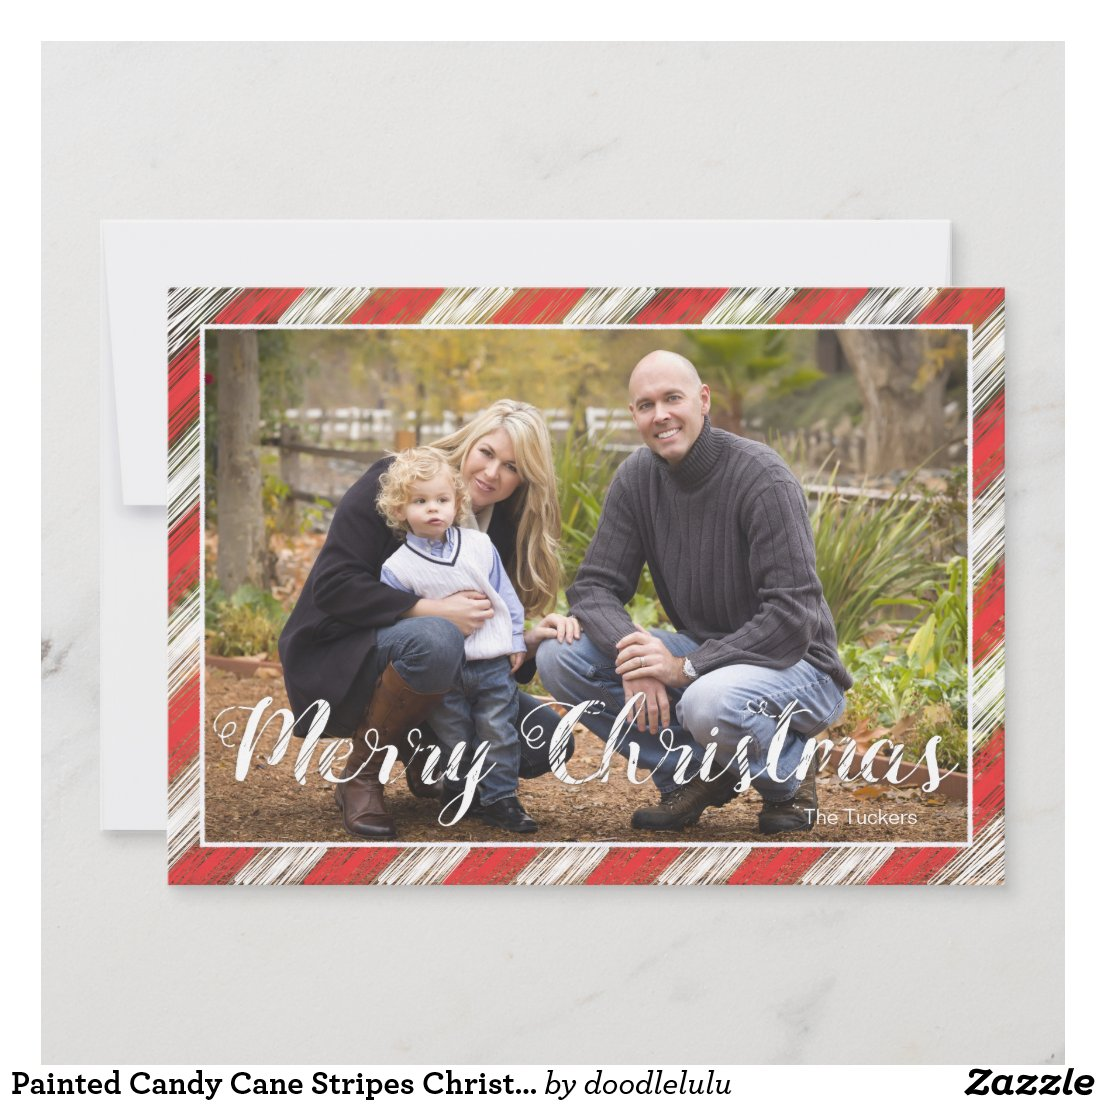 Painted Candy Cane Stripes Christmas Photo Card